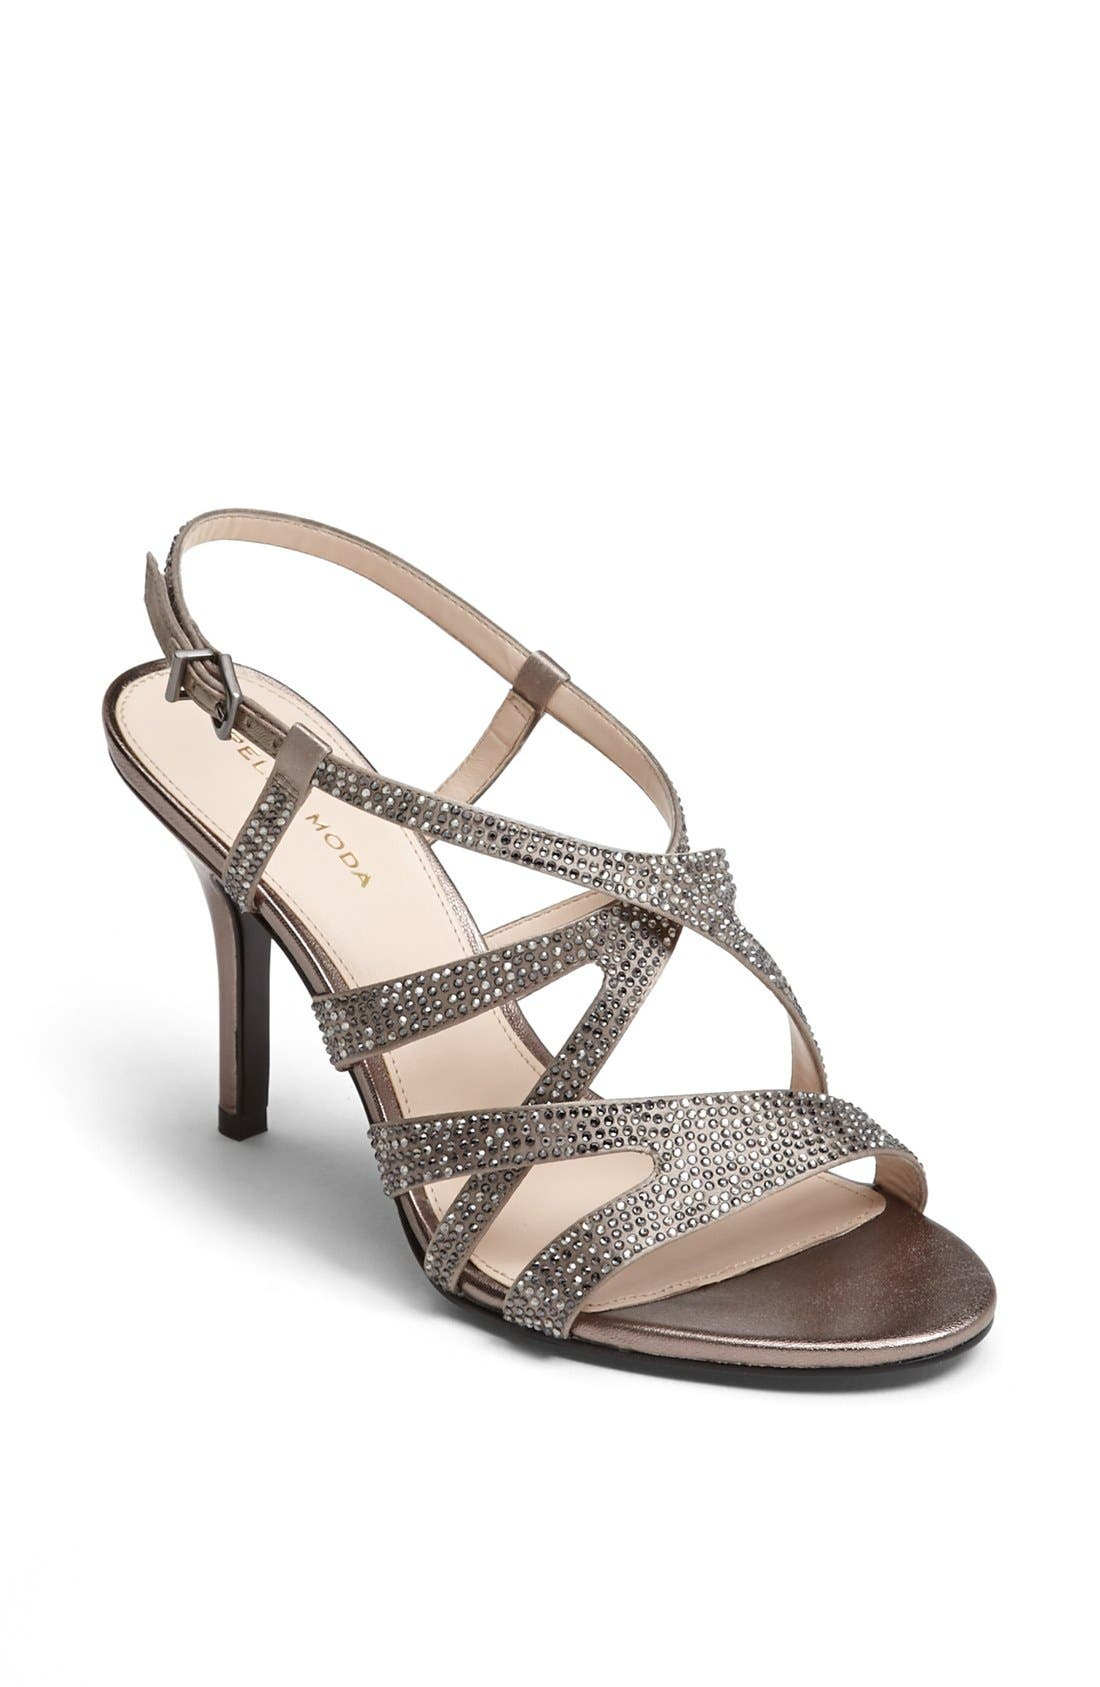 Alternate Image 1 Selected - Pelle Moda 'Rinae' Sandal